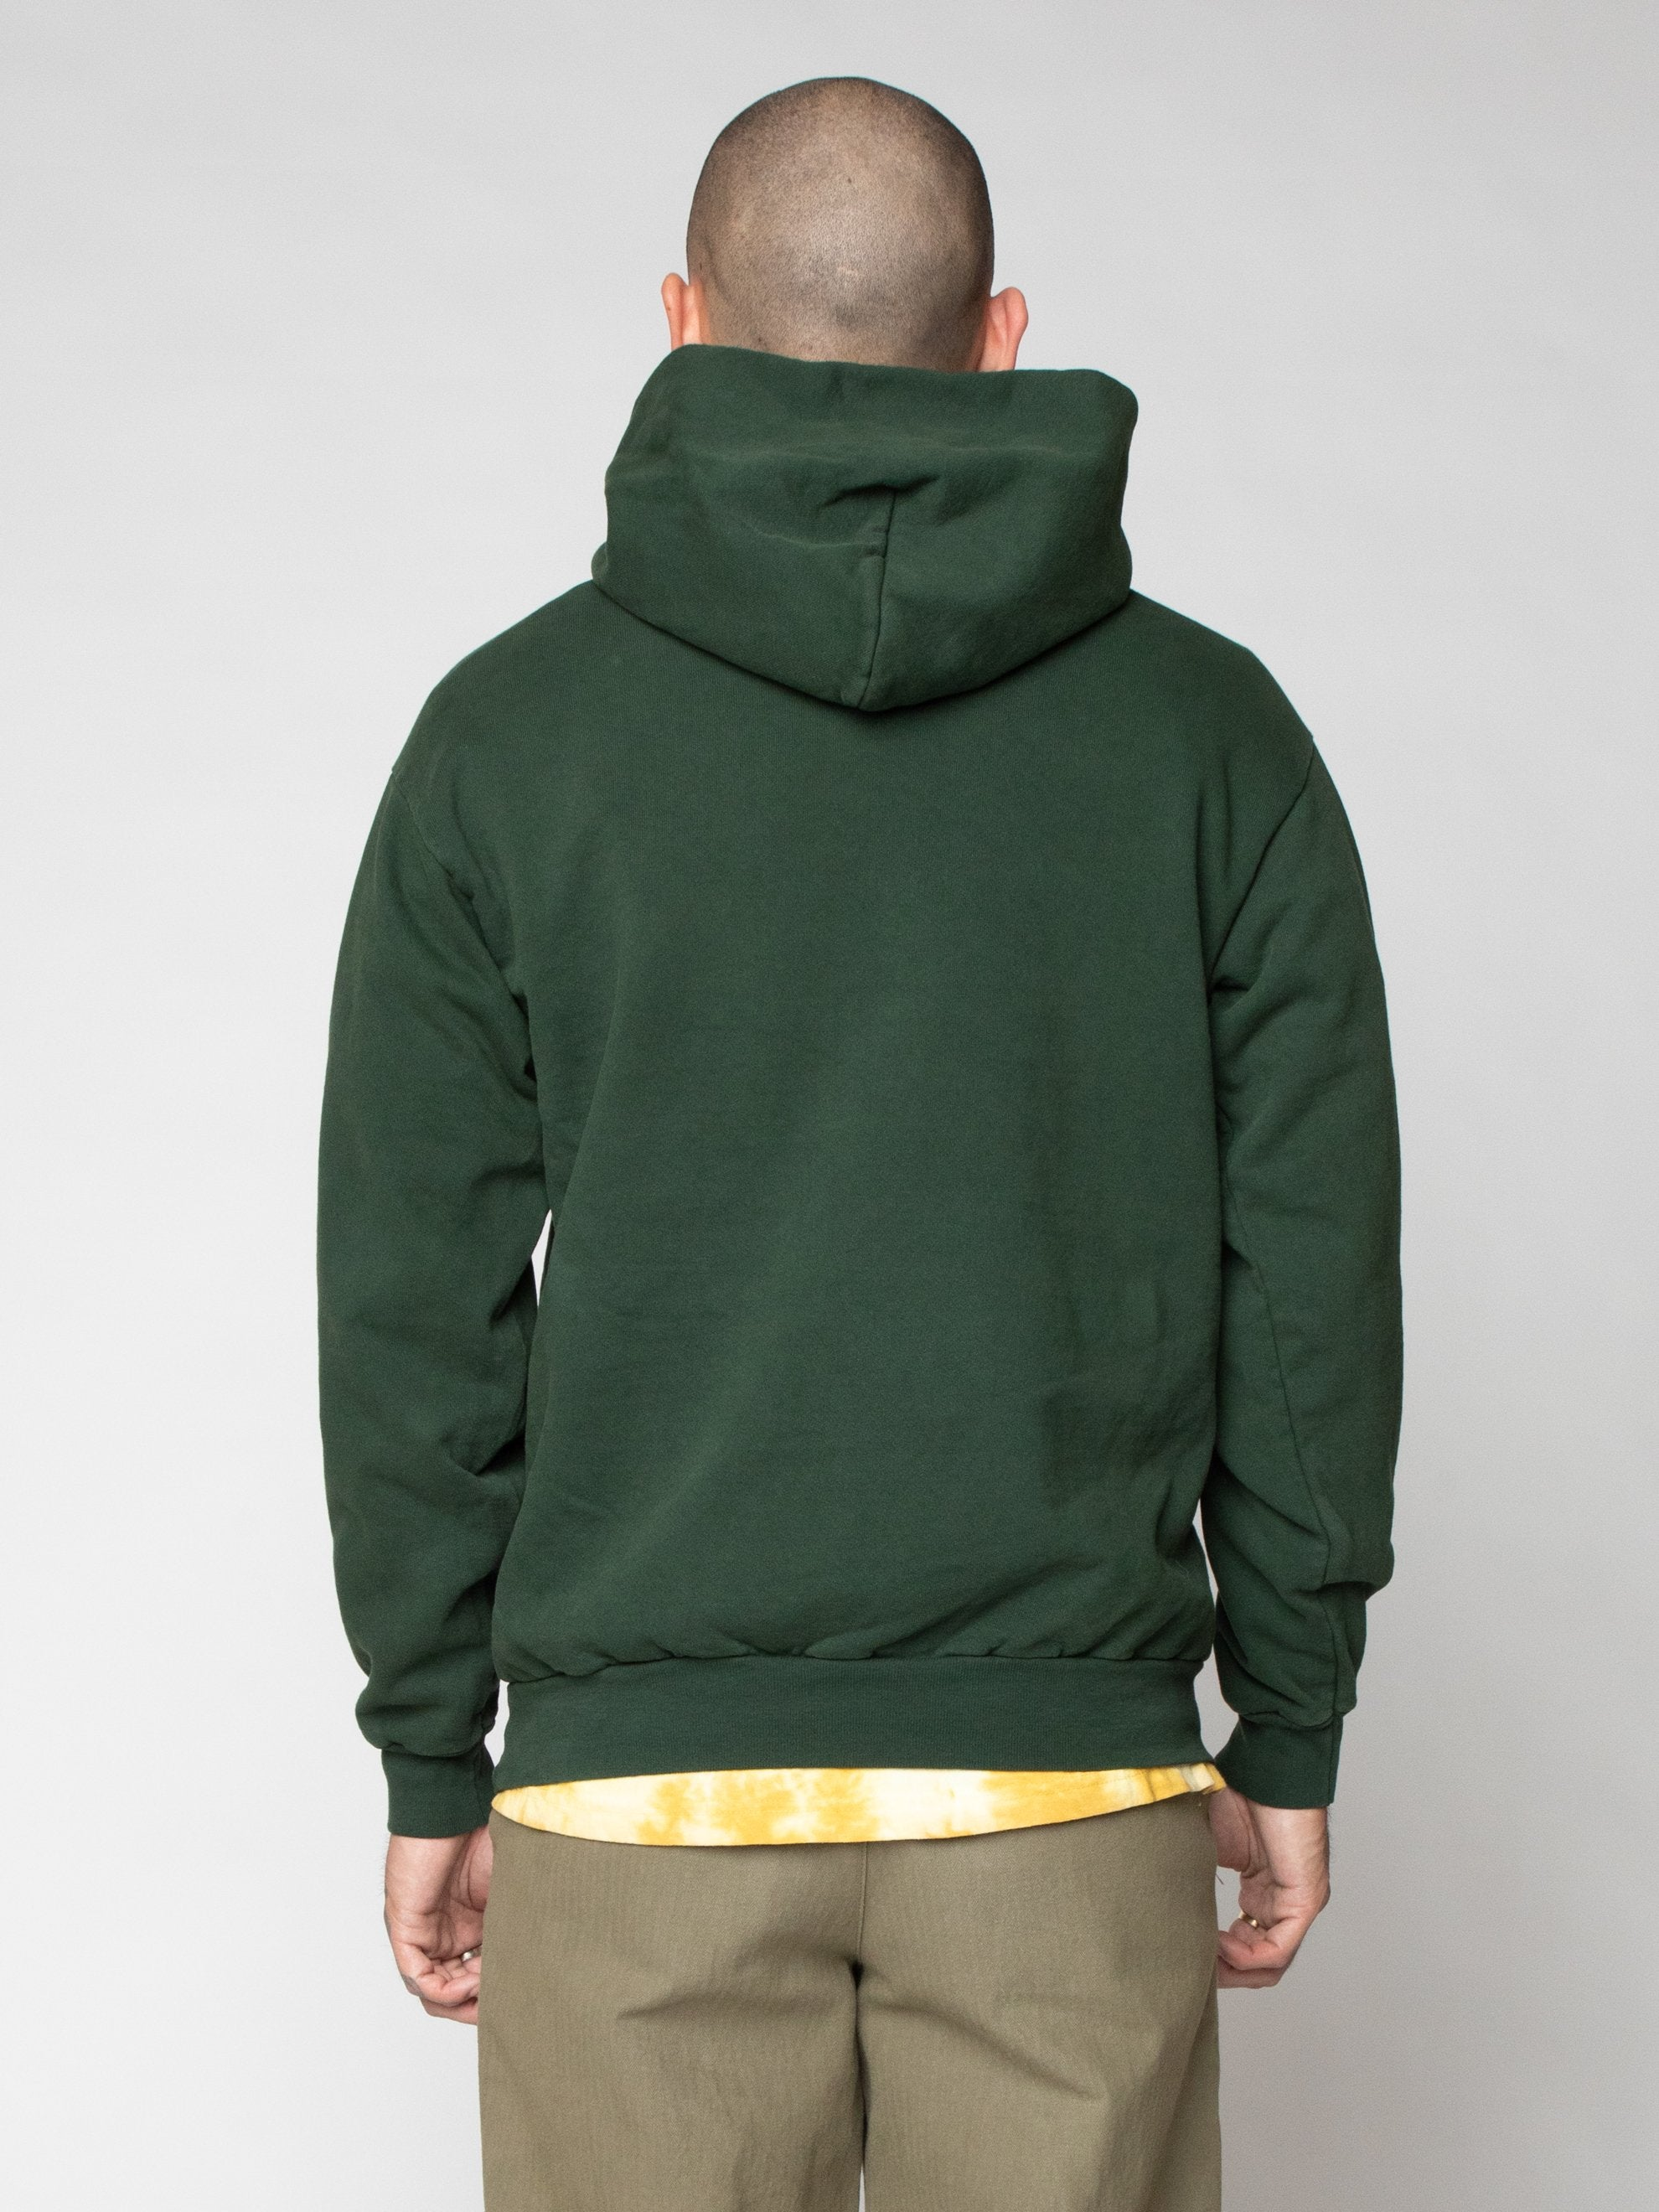 Green The Sweet Sound of Death Hoodie 6